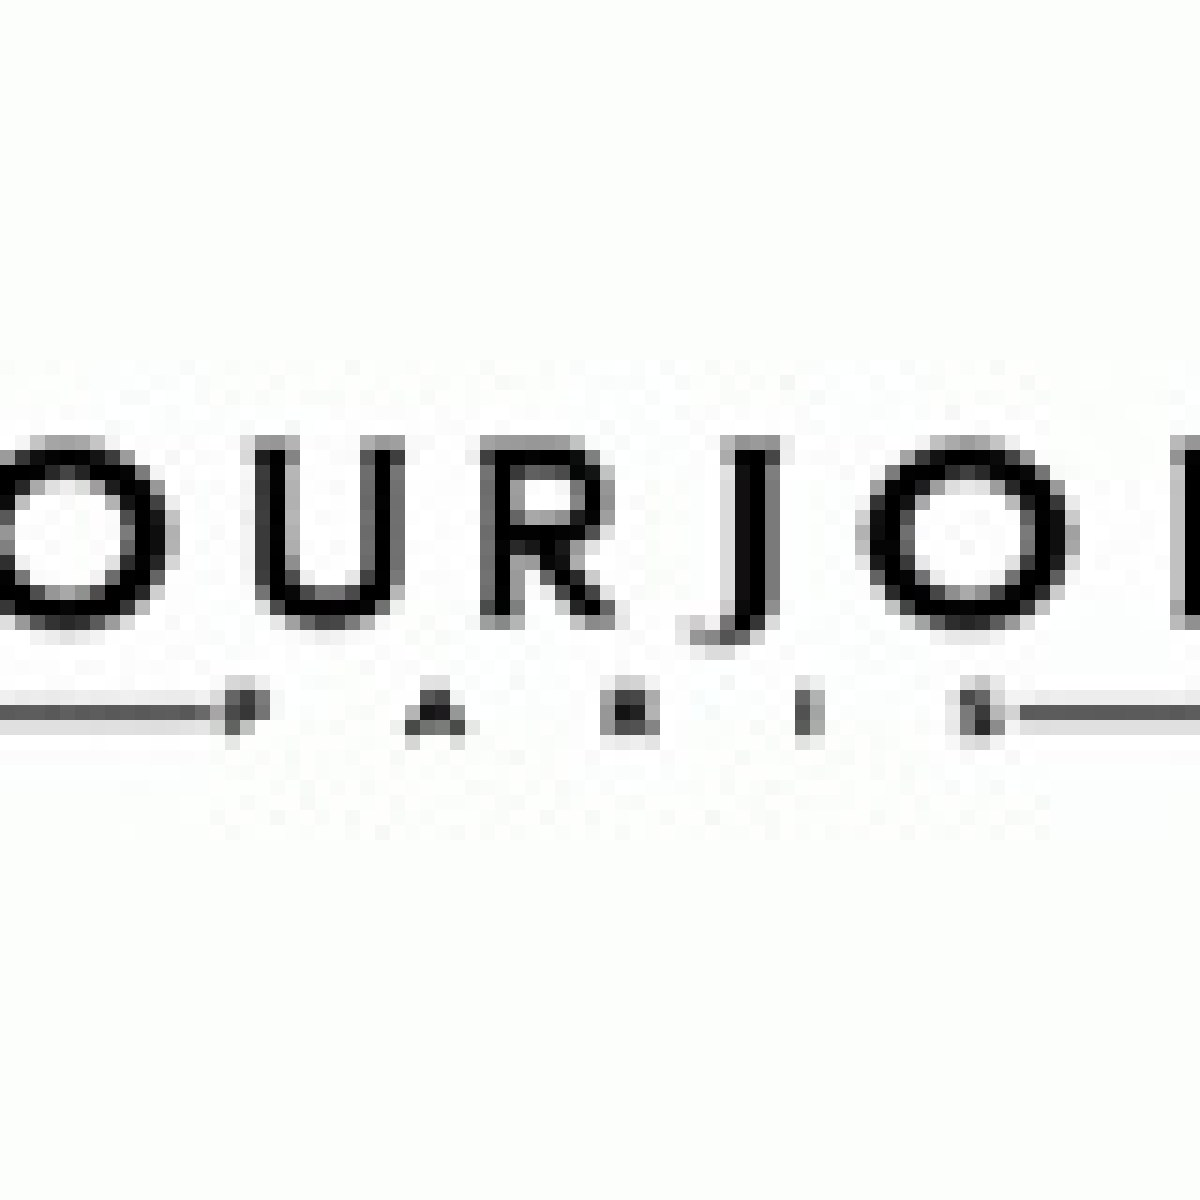 Bourjois_Paris-logo-0E812FB95D-seeklogo.com